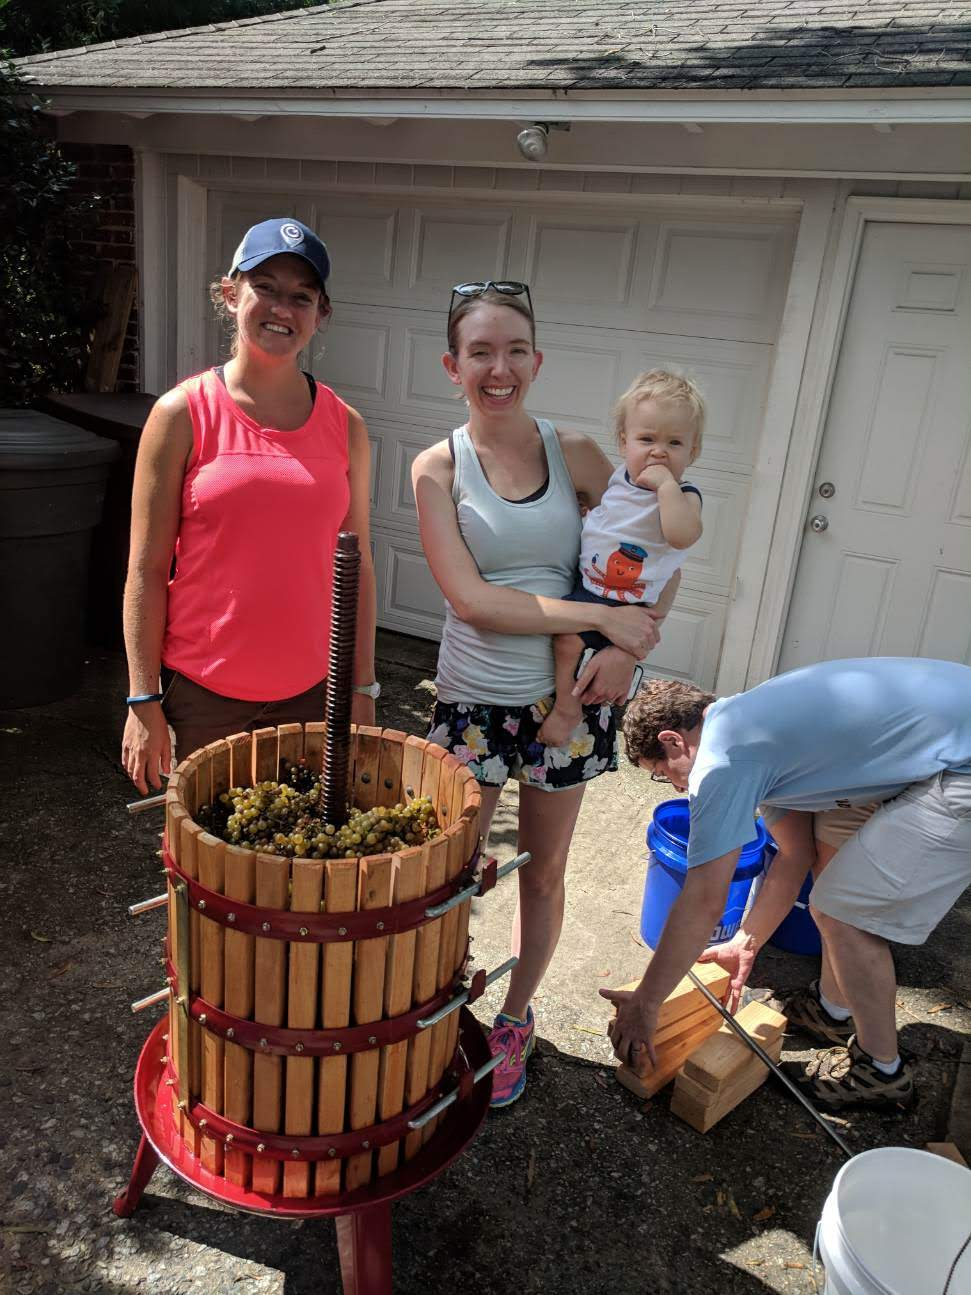 Making wine is a family affair